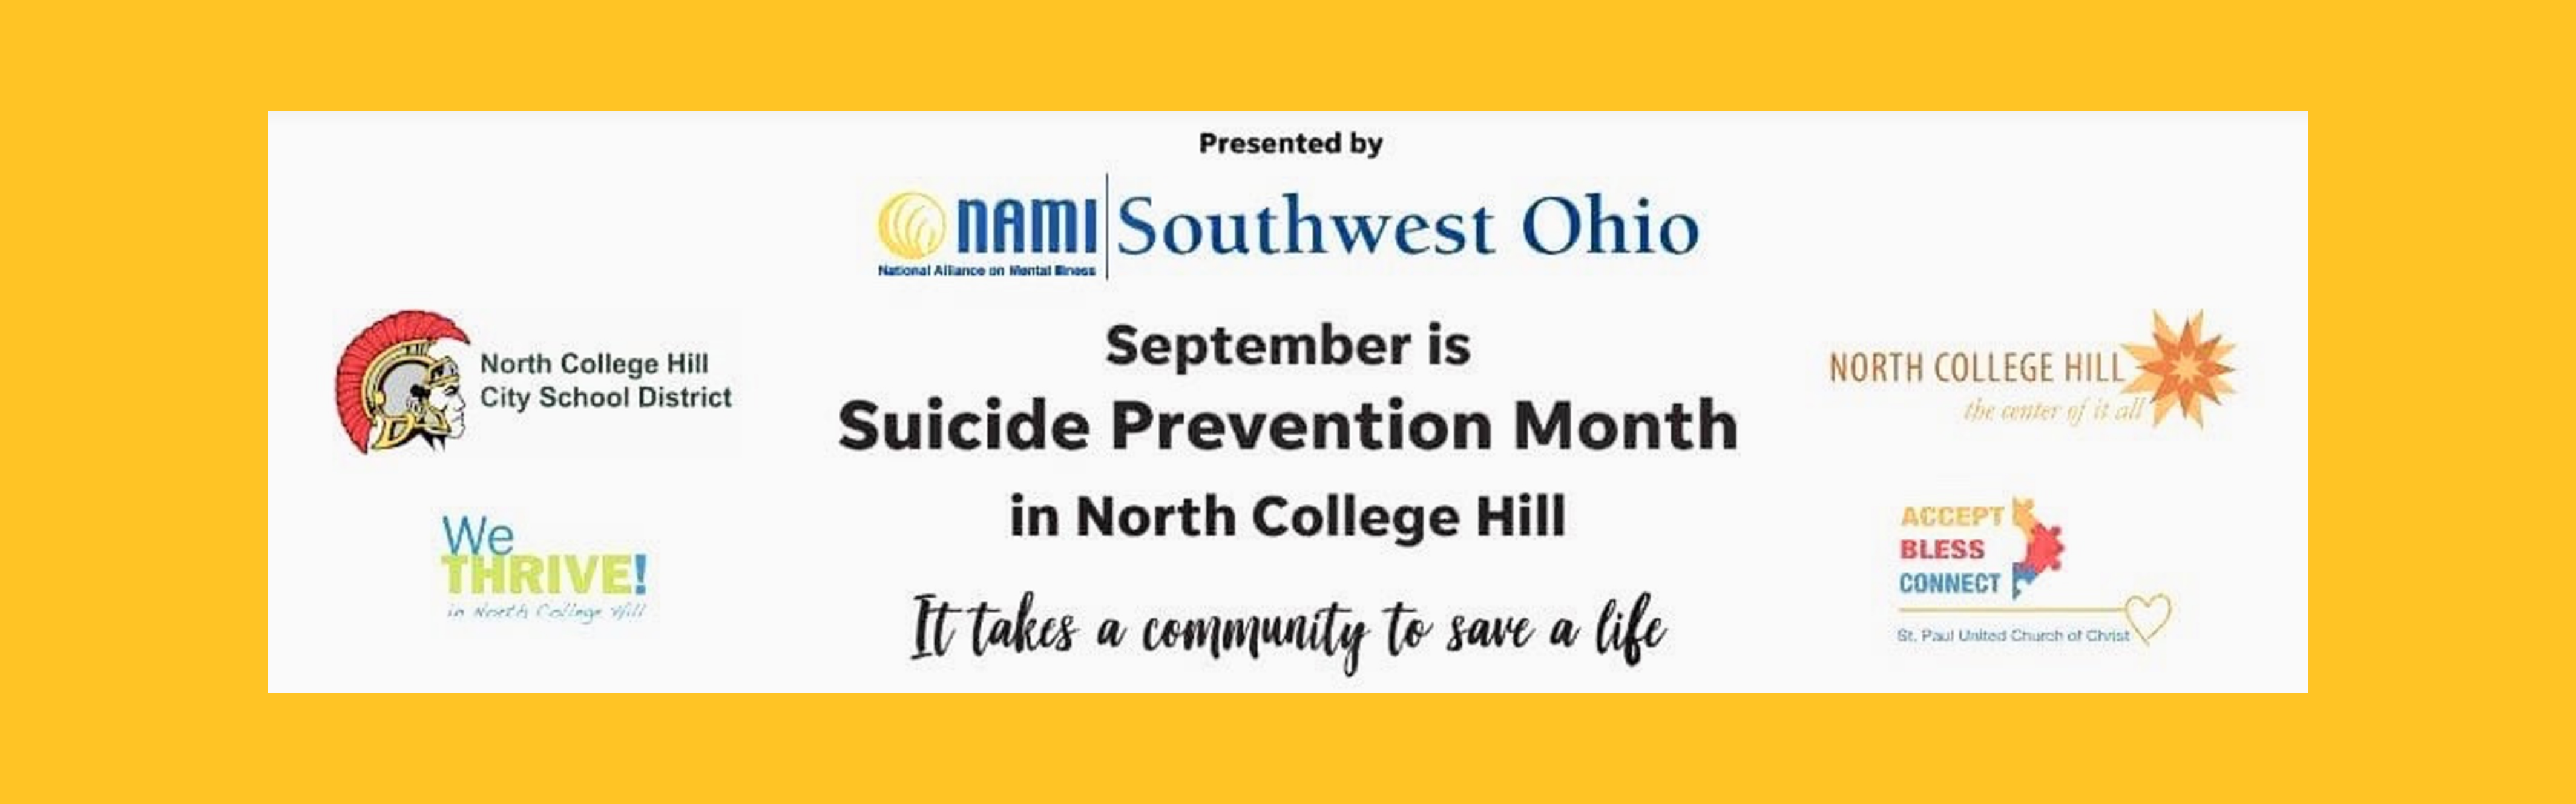 banner with logos of participating organizations proclaiming September is suicide prevention month in north college hill